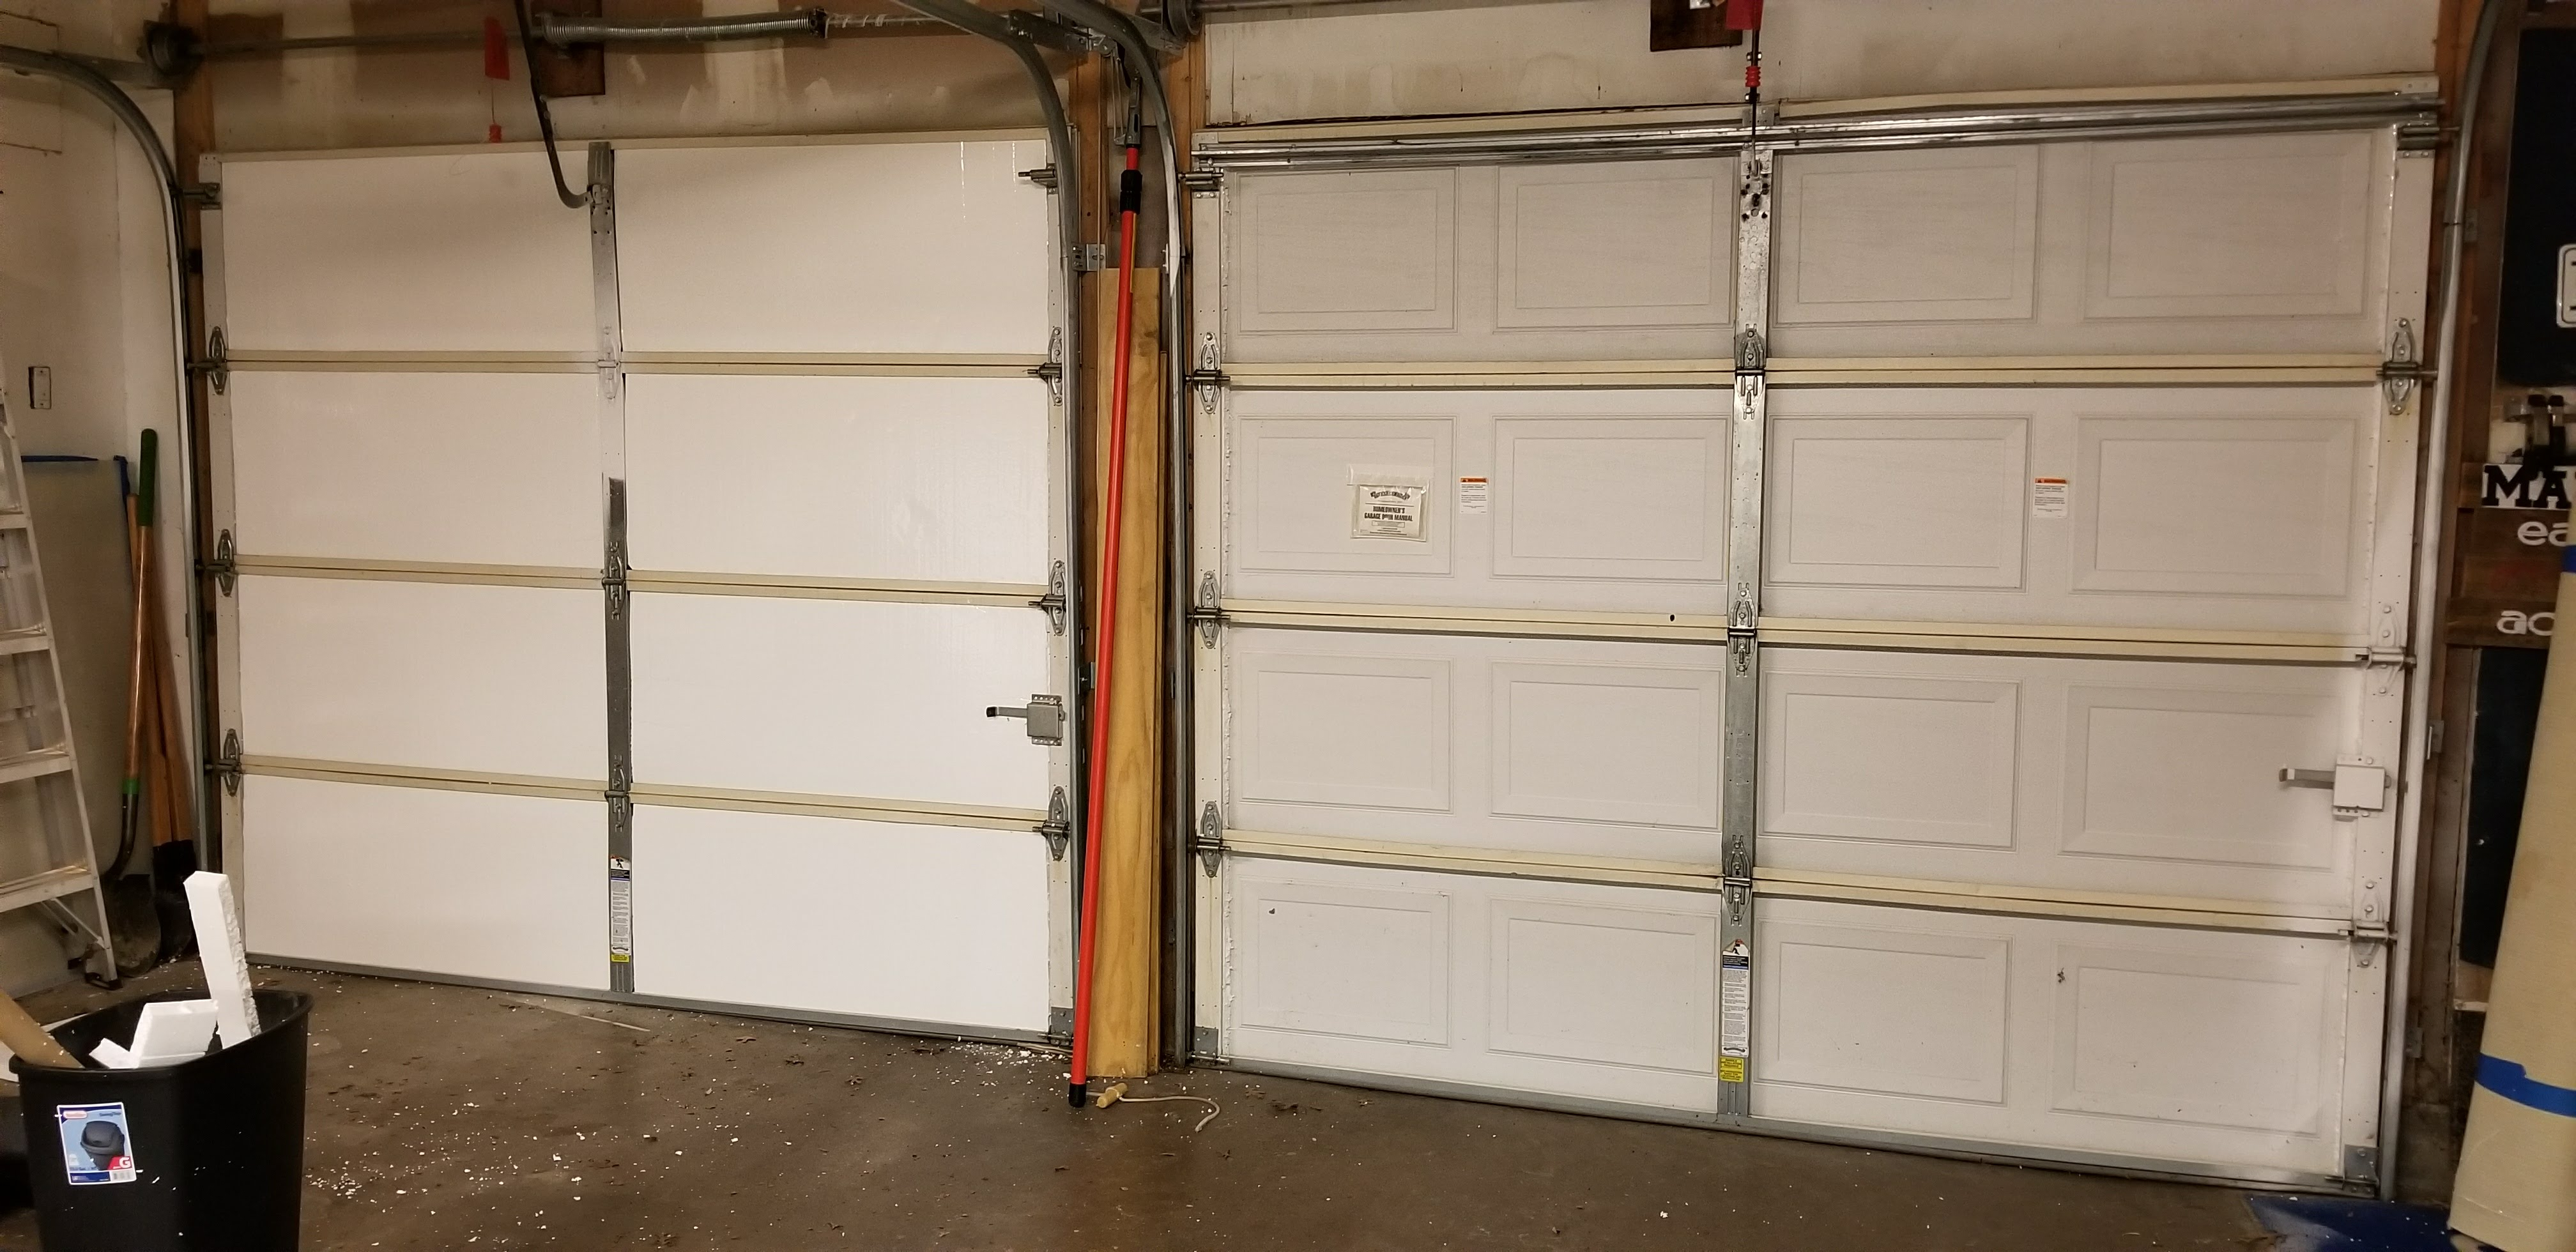 Diy Garage Door Insulation